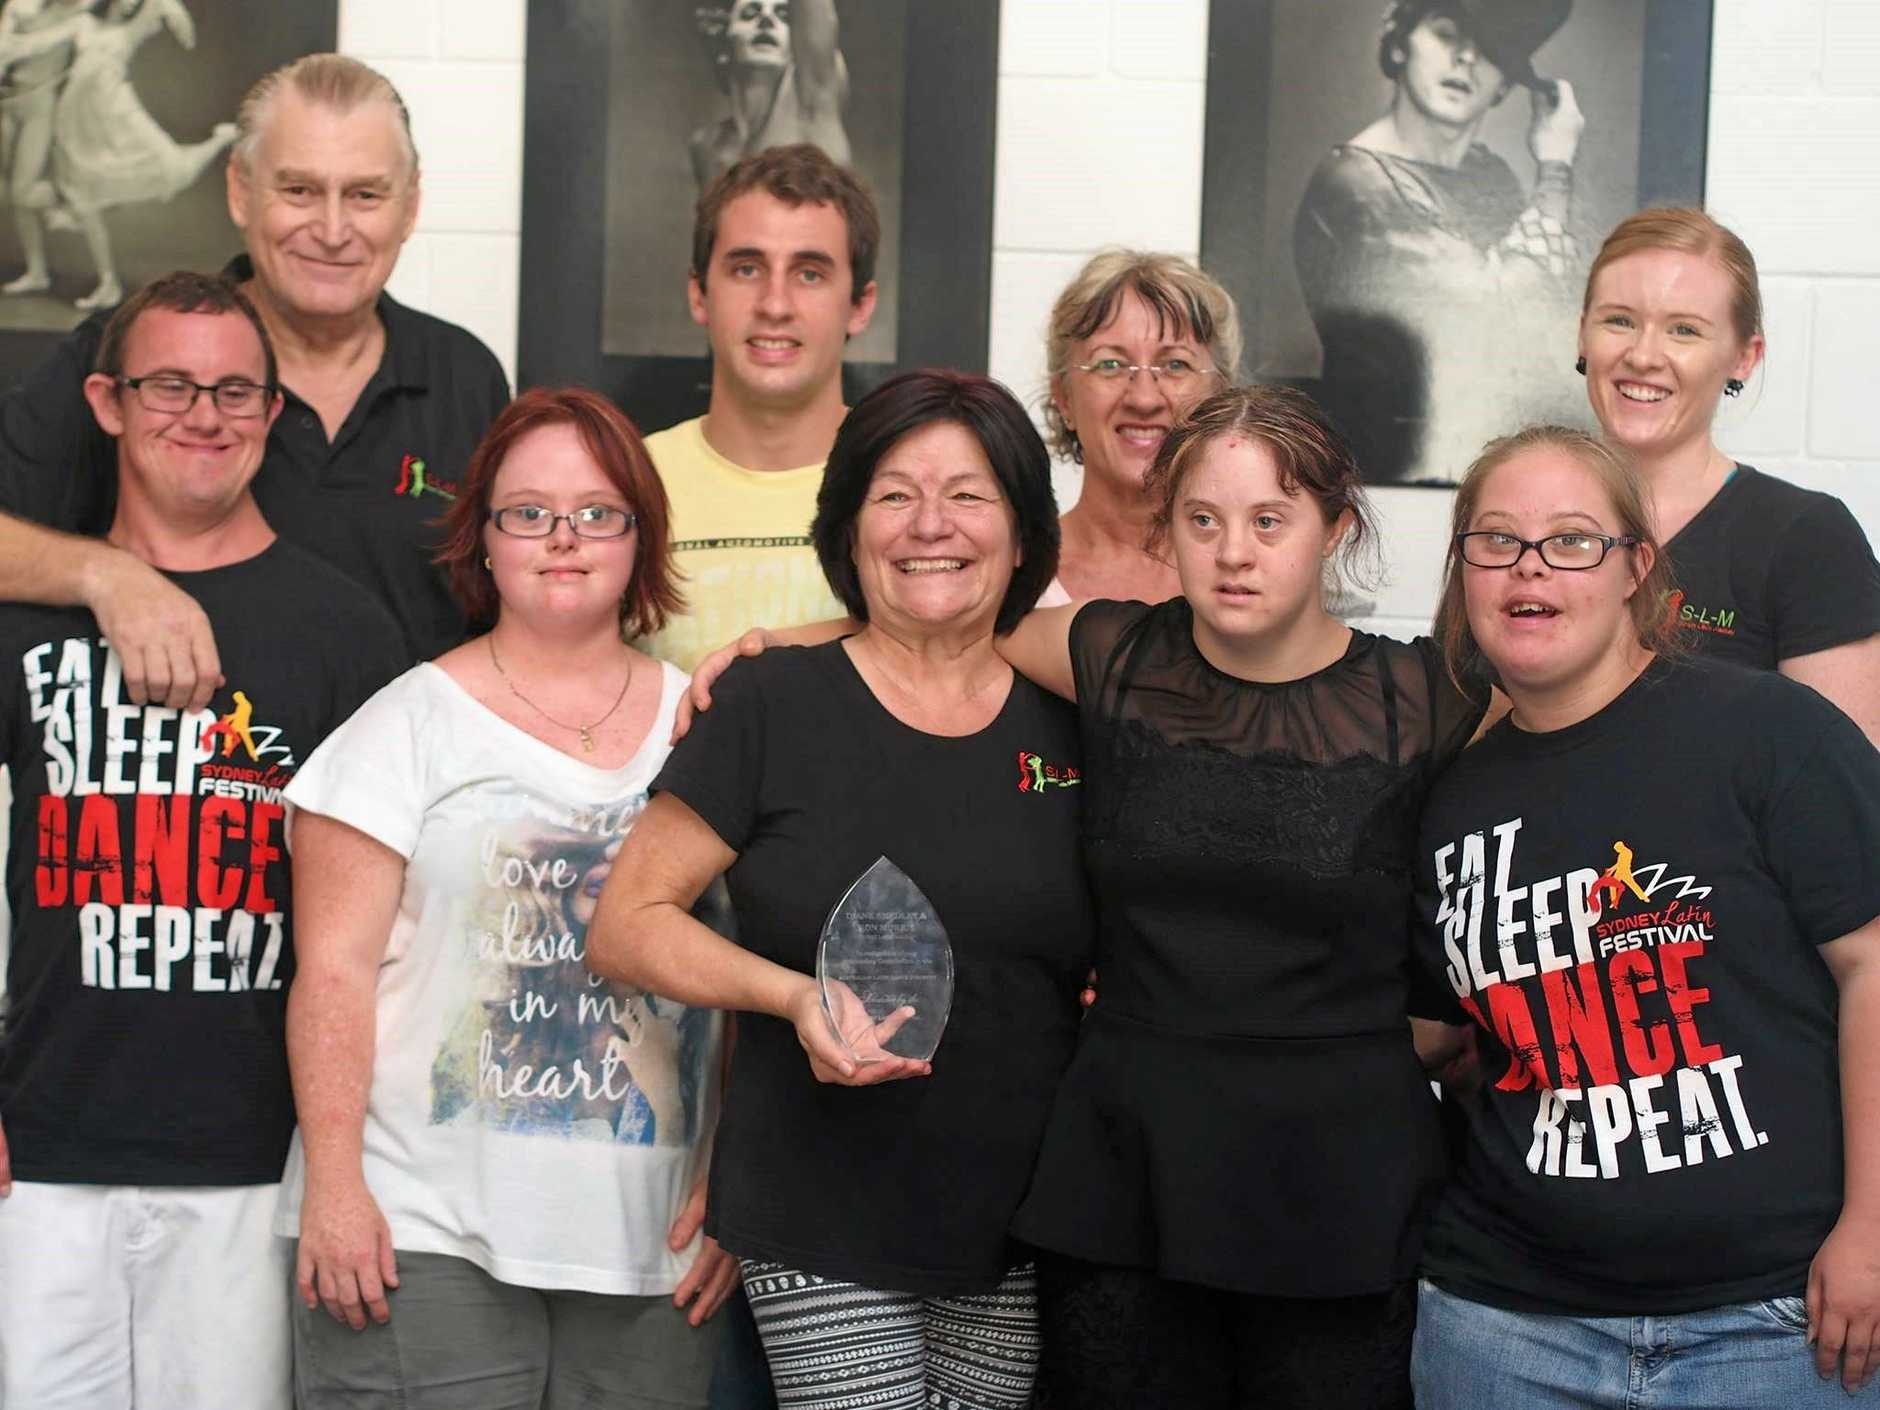 From Back Left - Ron Morris, TJ Straw, Caralyn Straw, Lenetia Stretton, Front Left - Shannon Holford, Donna Barnett, Diane Smedley, Tammy Straw and Teegan O'Keeffe.